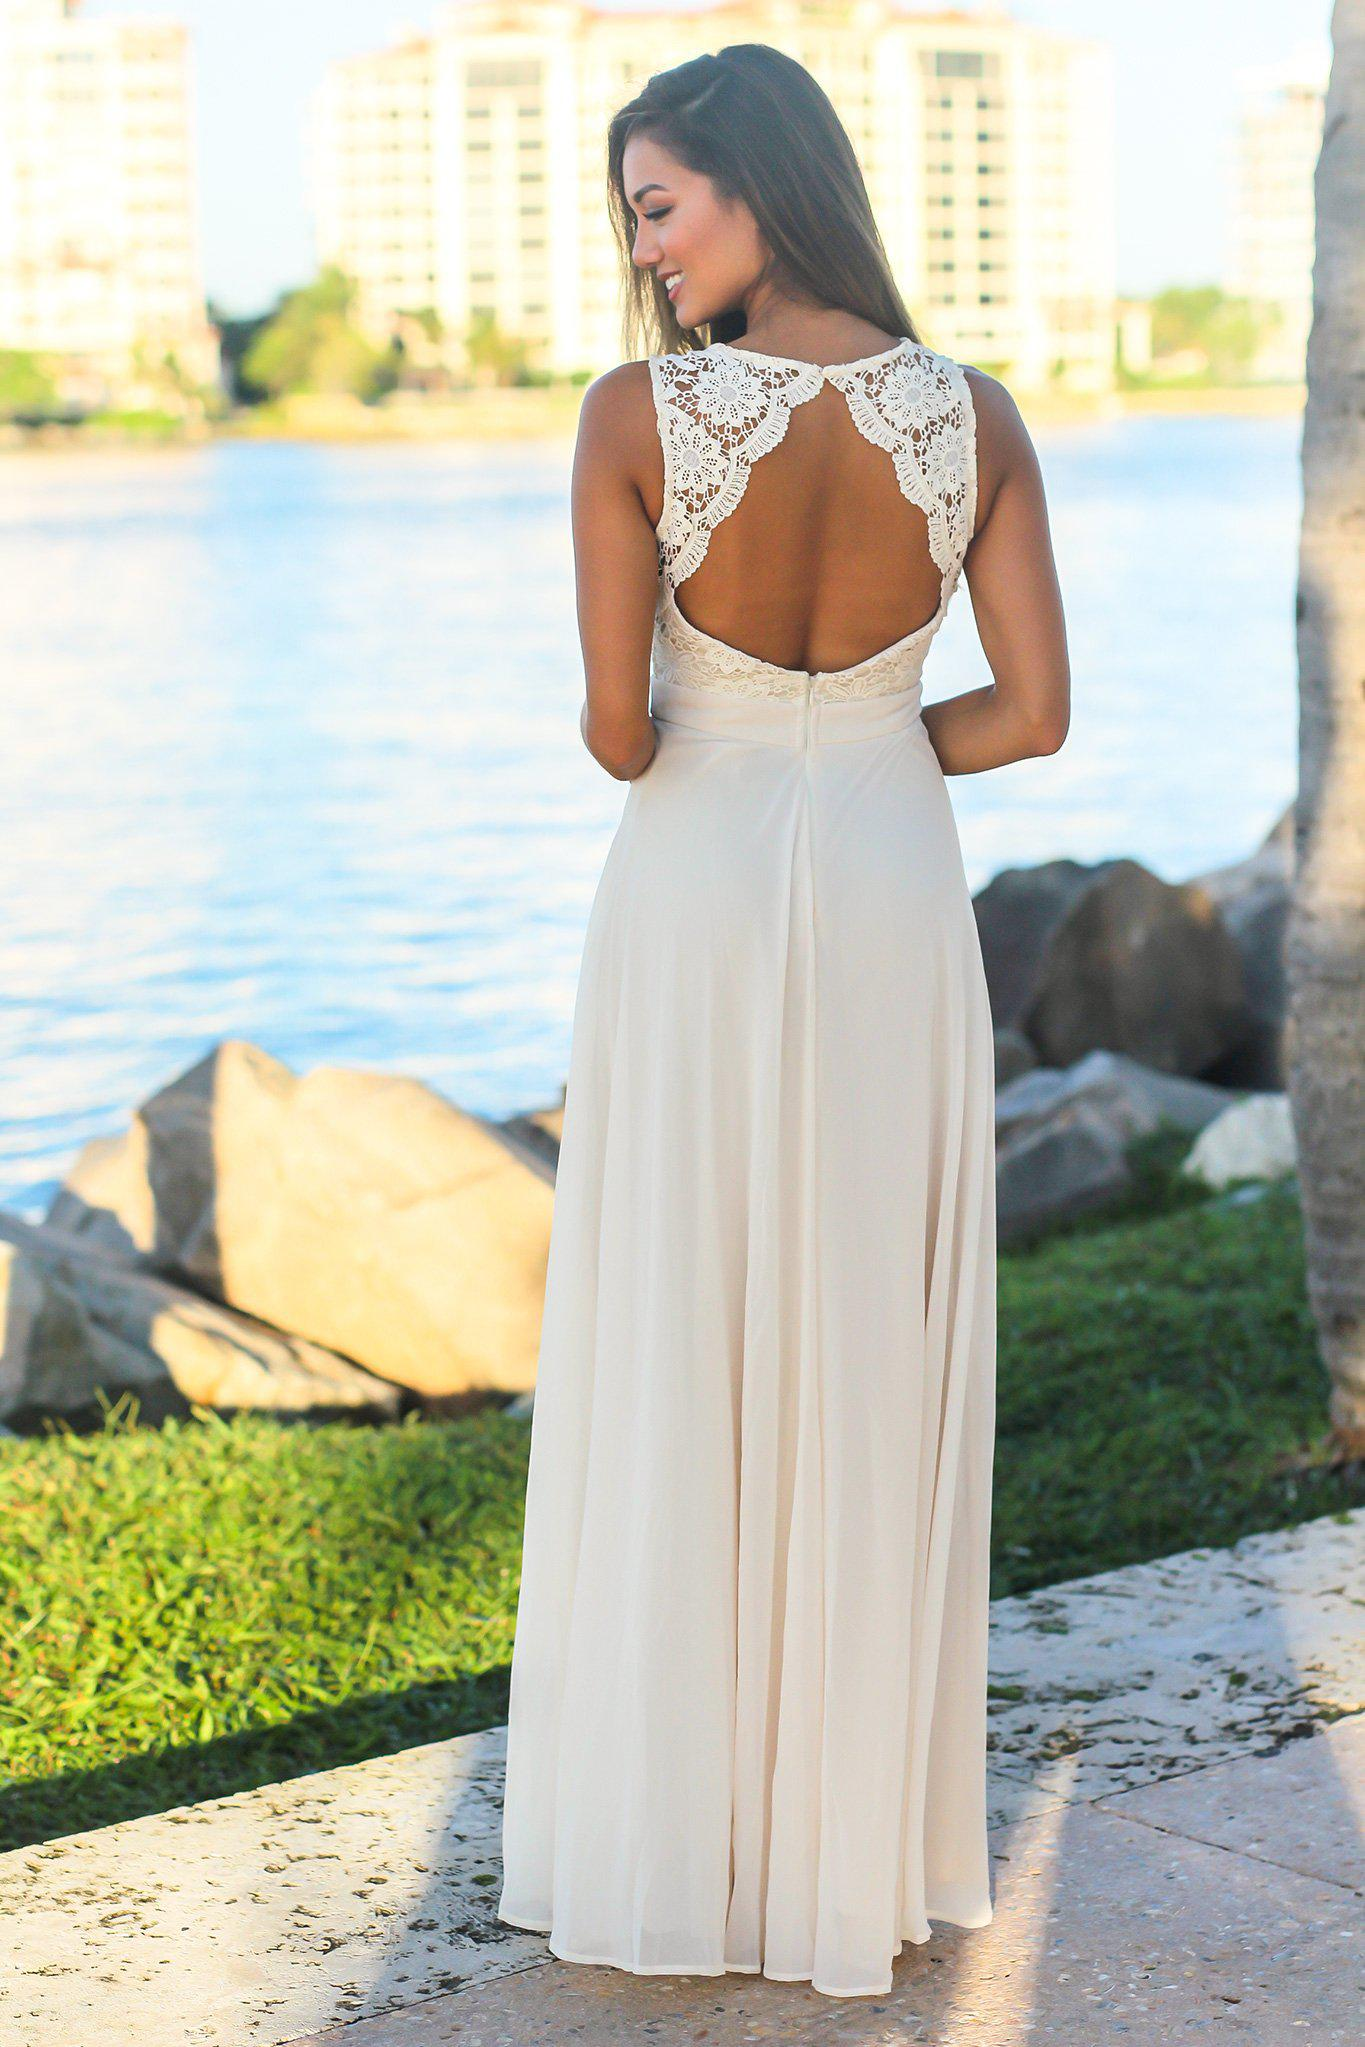 Off White Sleeveless Maxi Dress with Crochet Top